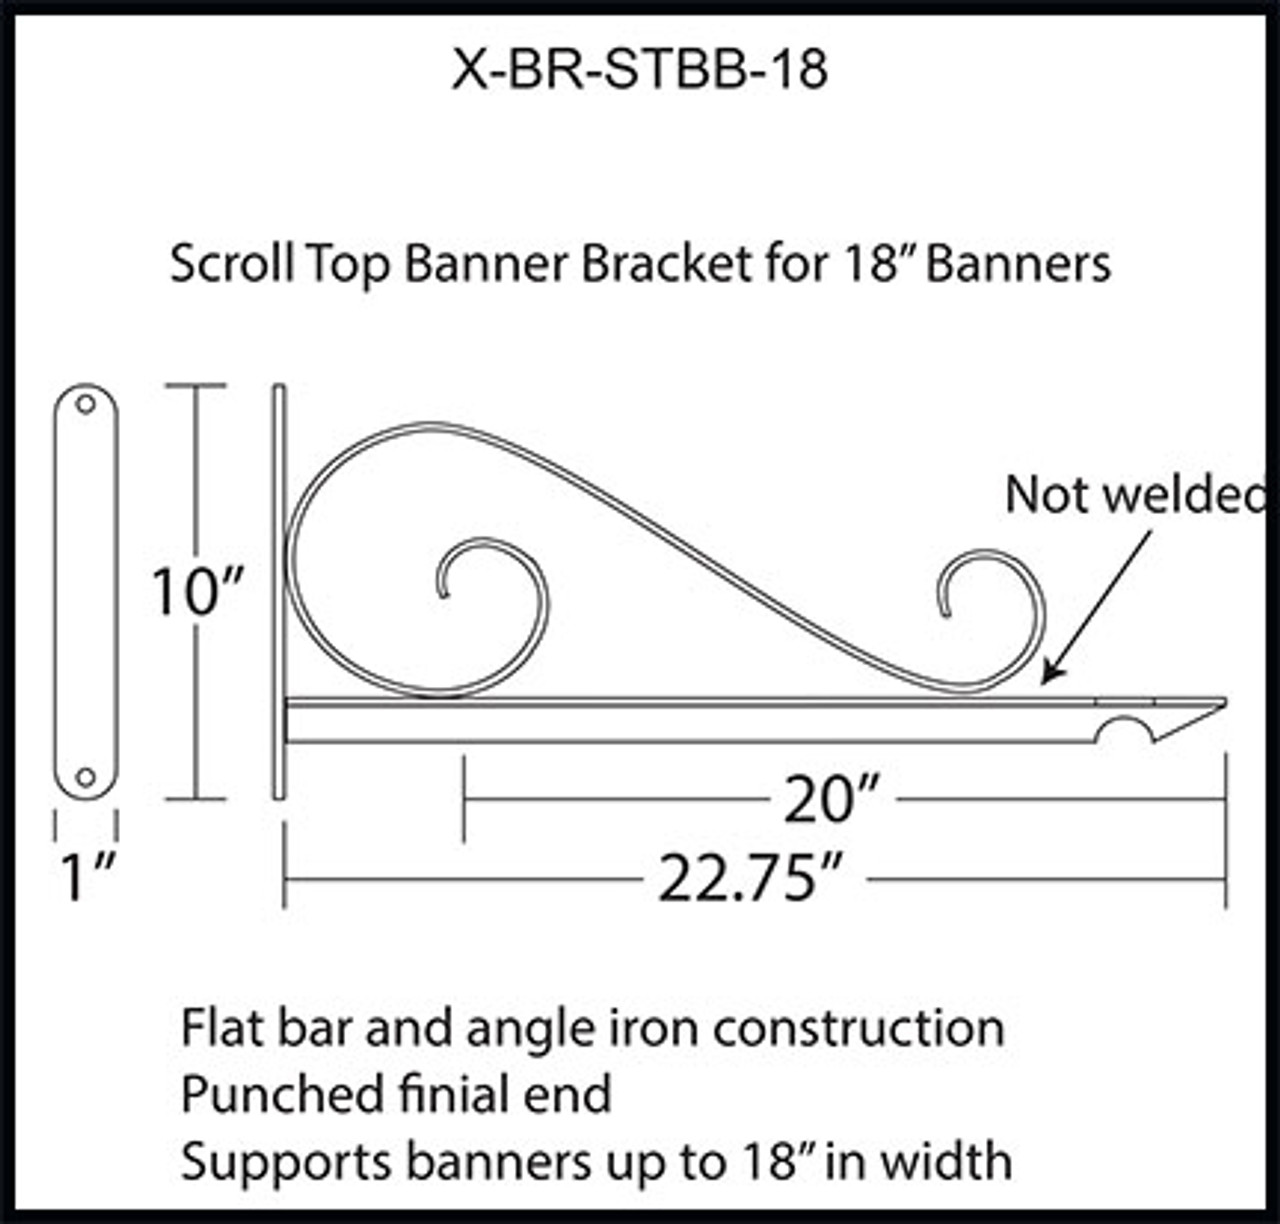 X-BR-STBB-18 SPECIFICATION DRAWING